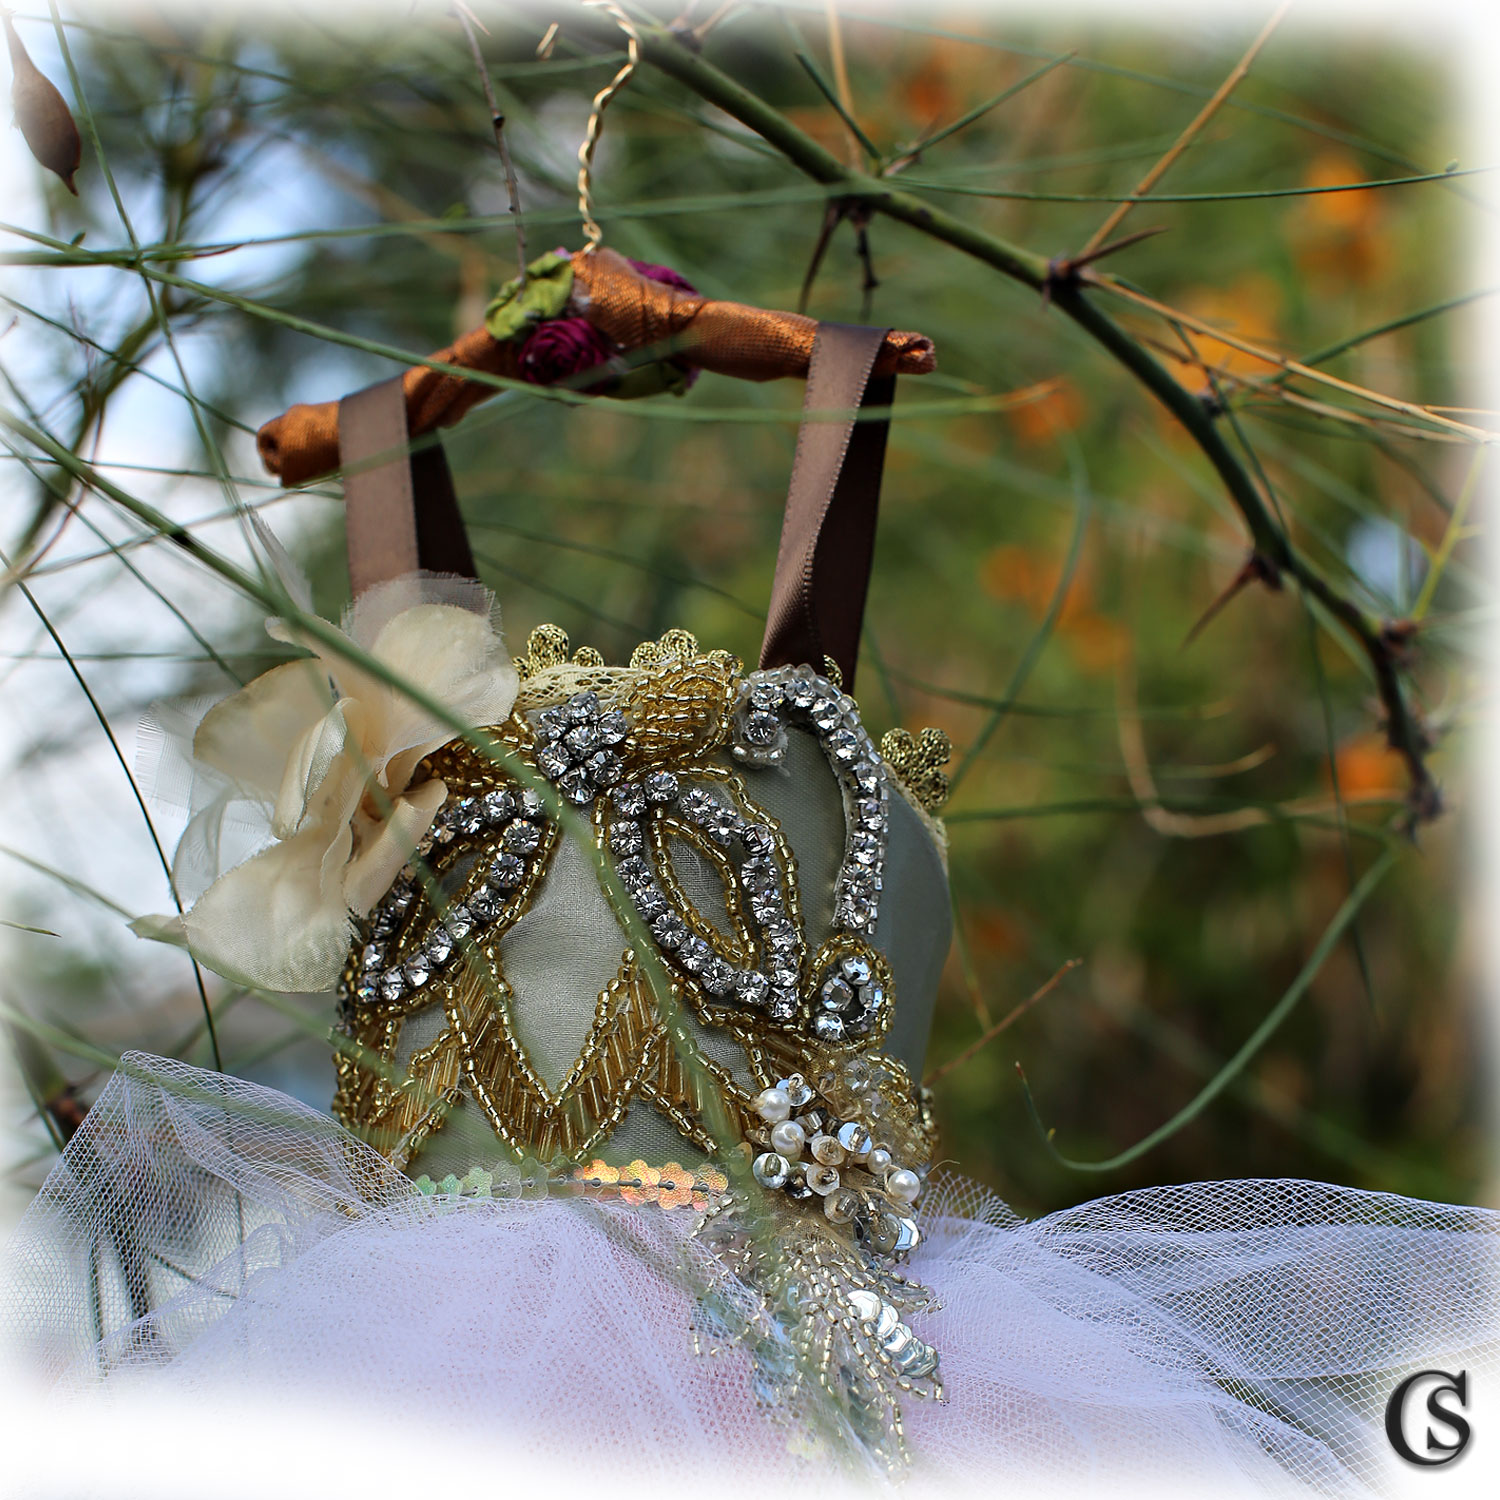 Bespoke faerie ball gowns CHIARIstyle